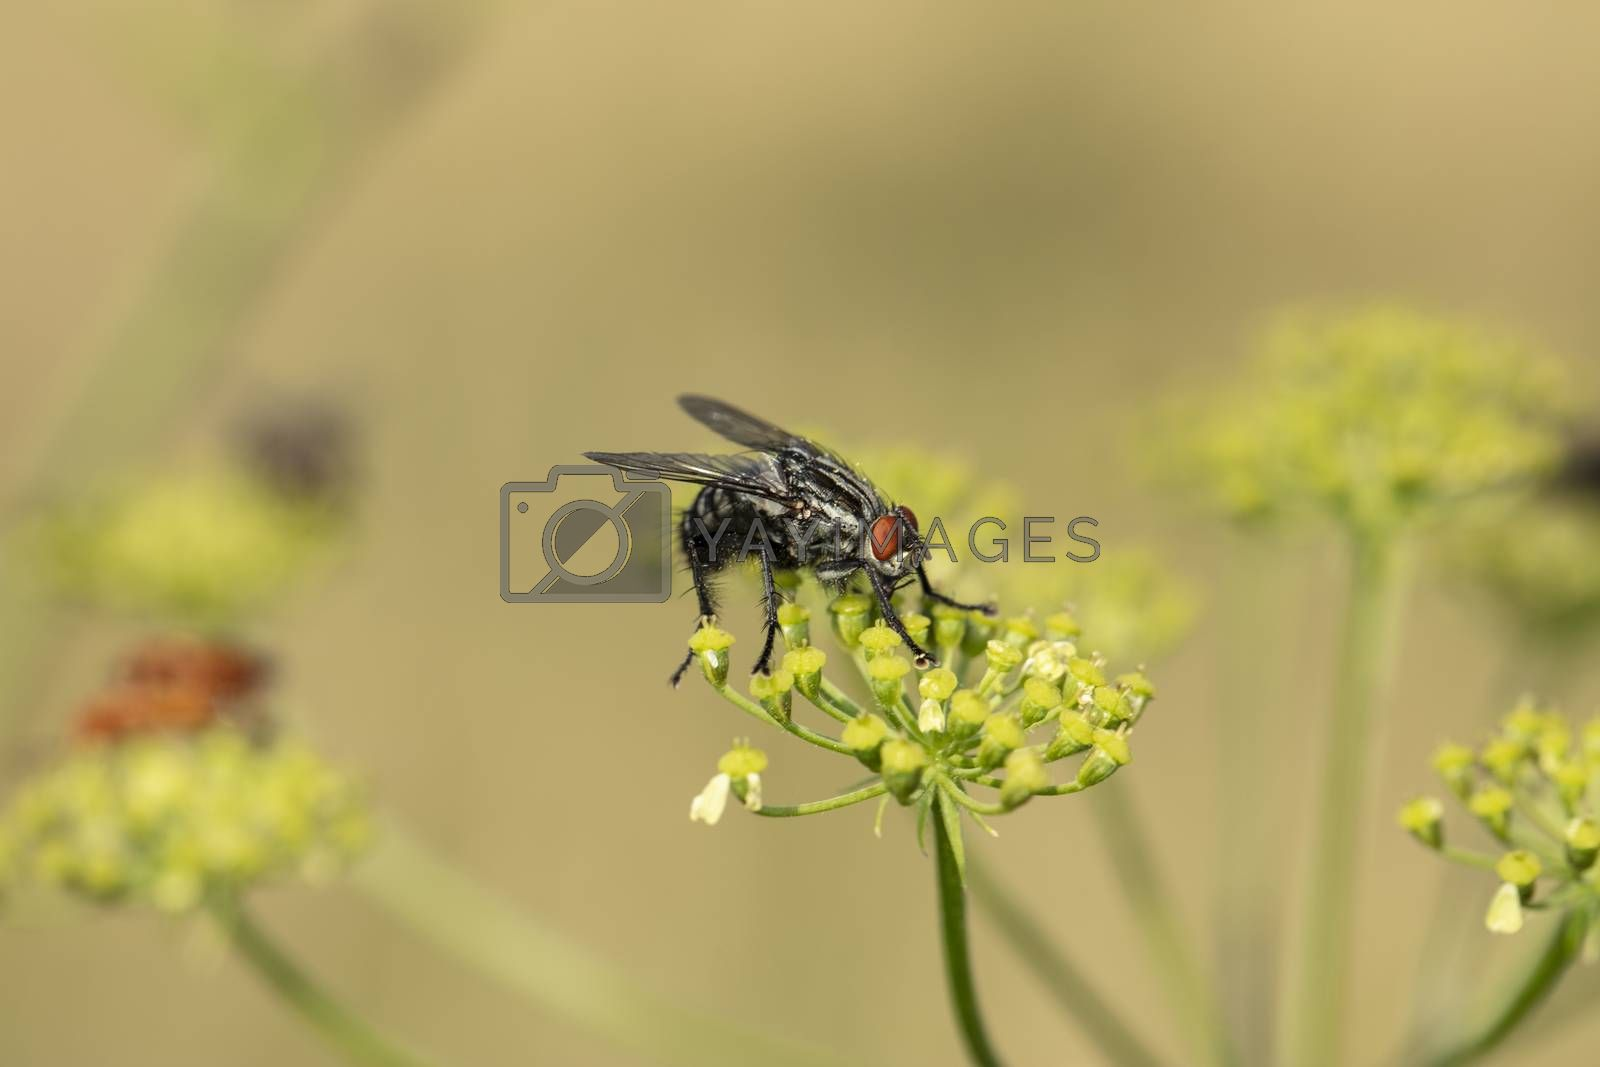 an ordinary large fly with red eyes sits on the plant